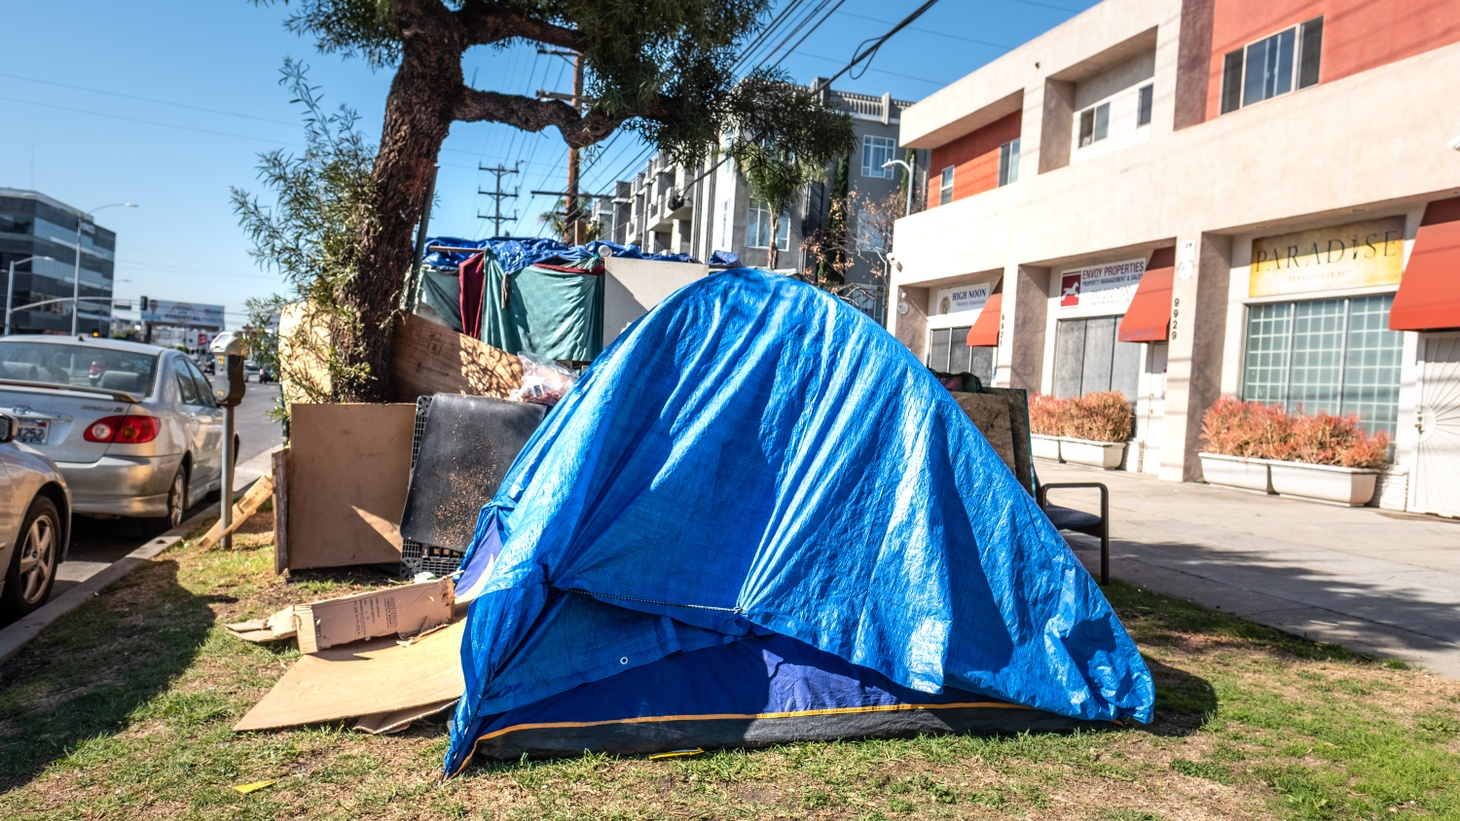 A homeless encampment on Venice Blvd. in Culver City. Many of these encampments are all over LA, and one woman is trying to get unhoused people off the streets by turning empty buildings in South LA into their new homes.